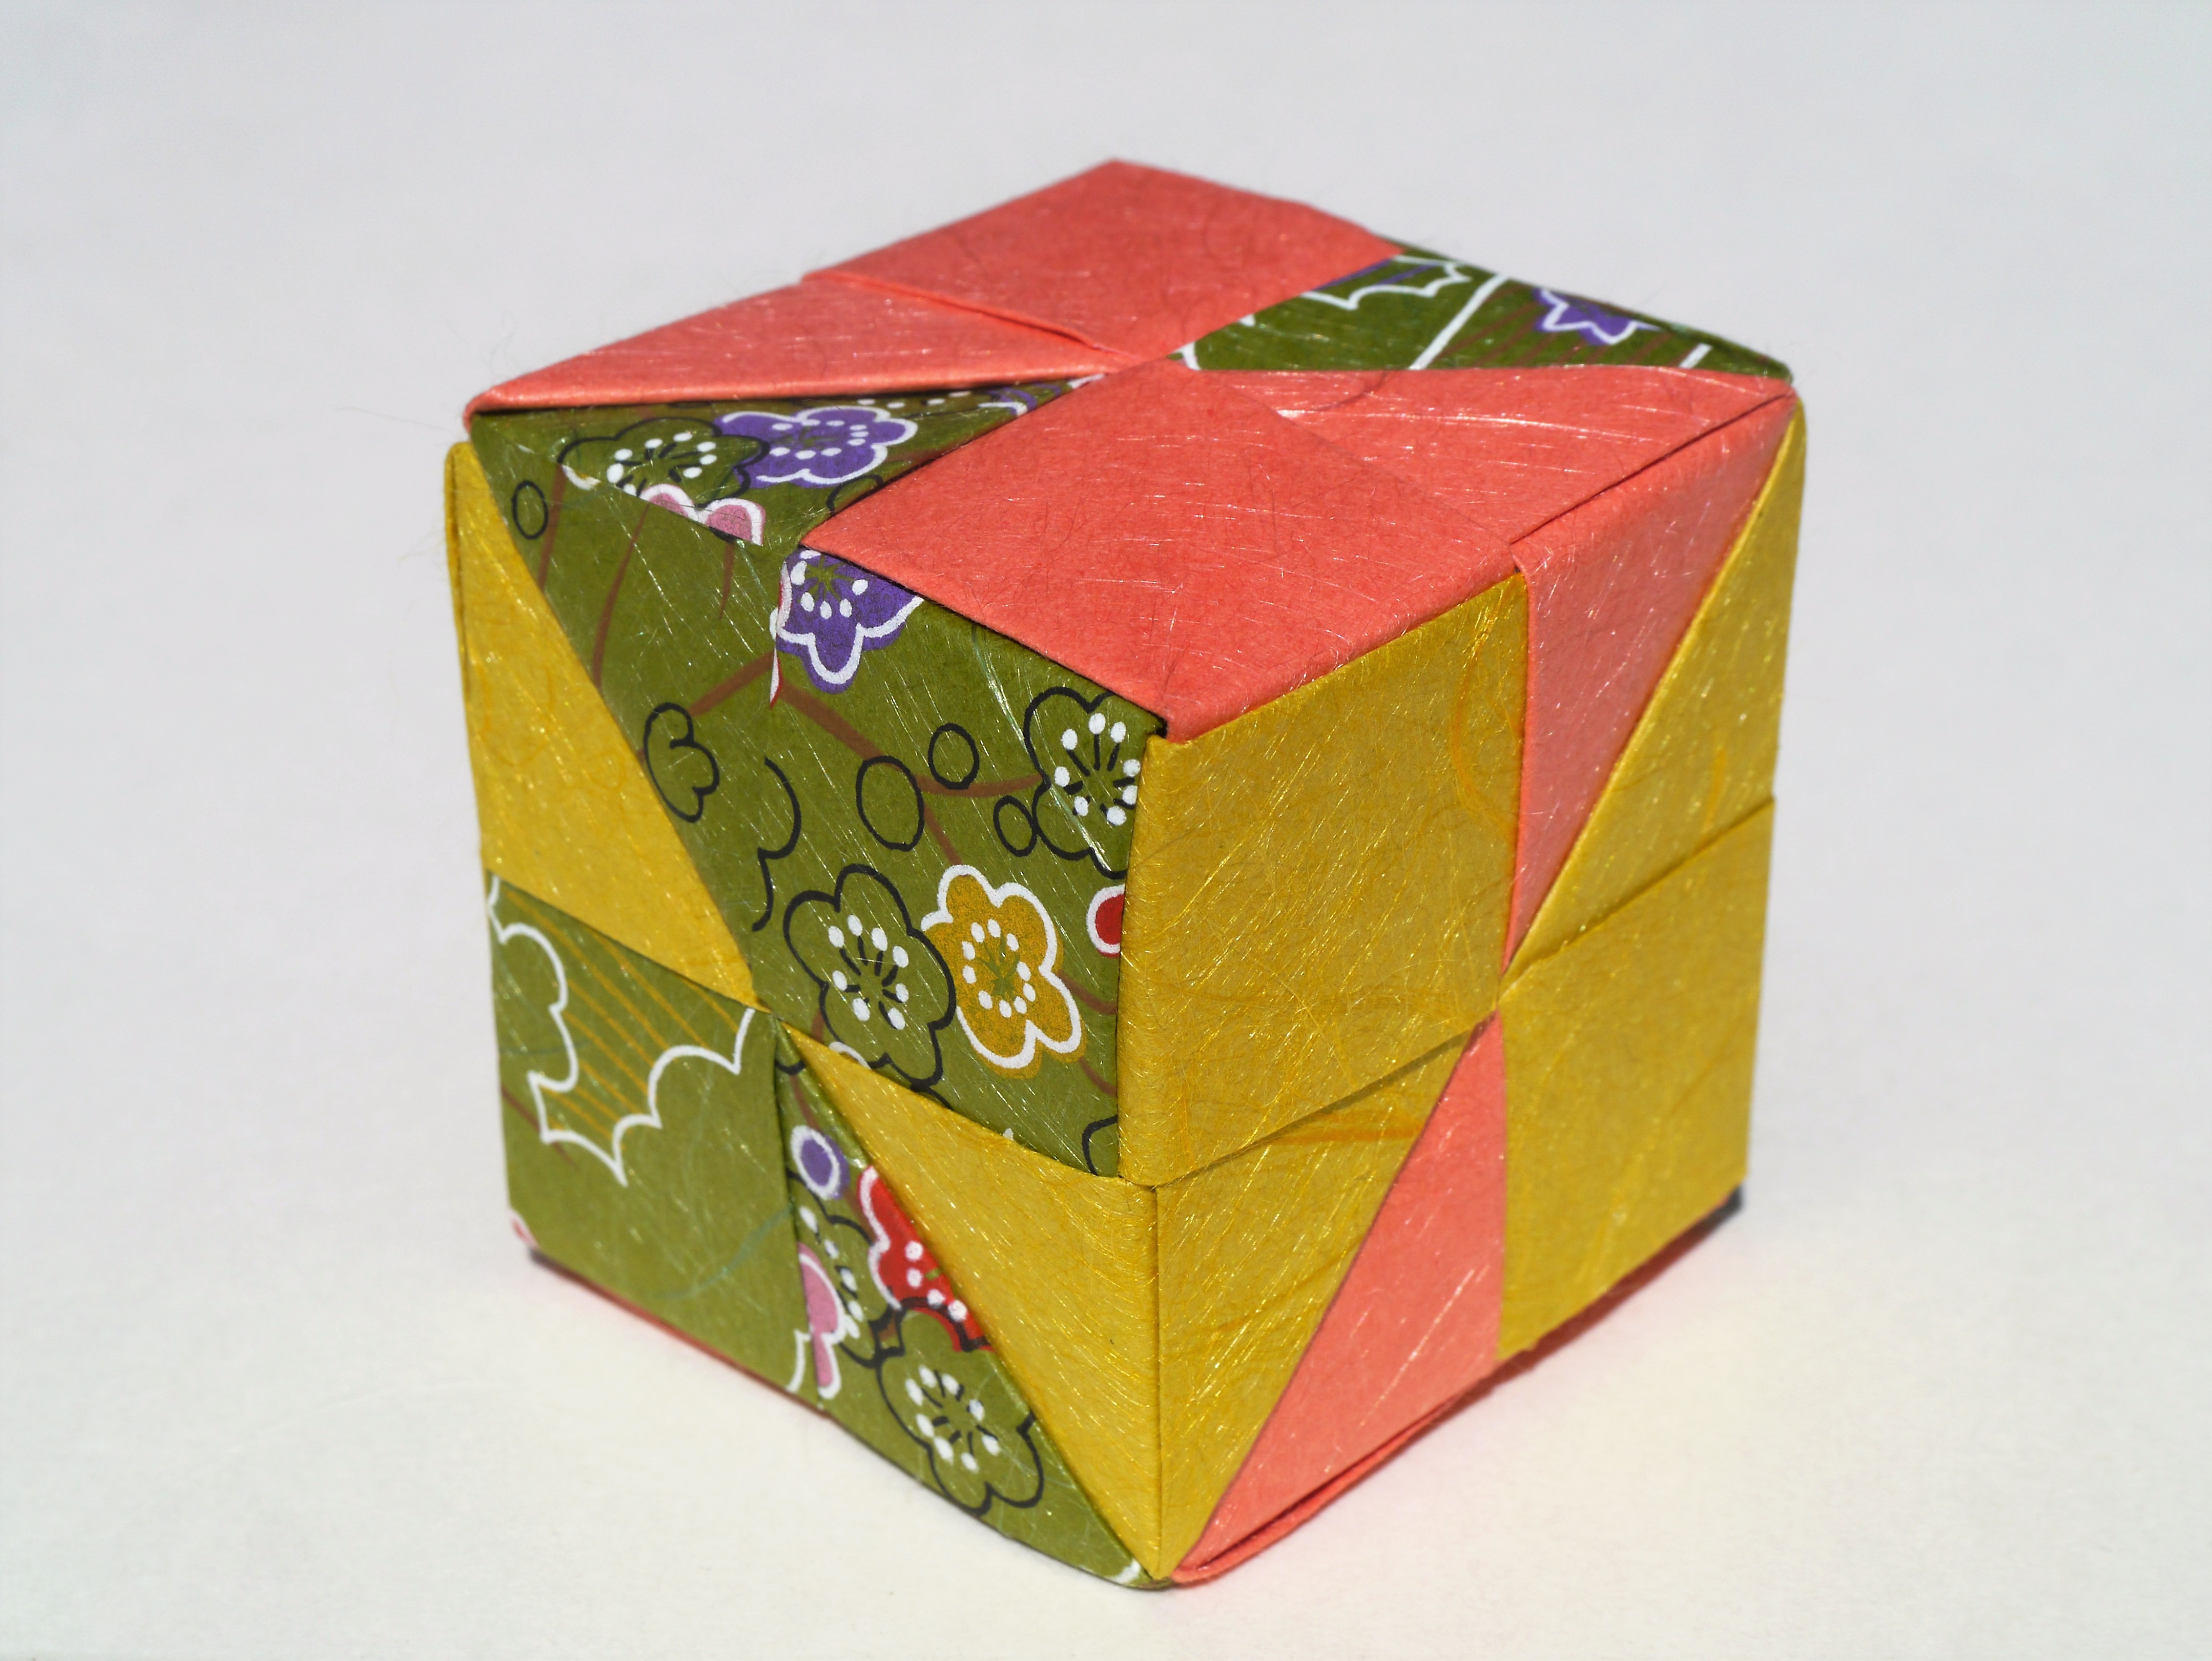 How To Fold Origami Cube How To Make An Origami Cube In 18 Easy Steps From Japan Blog